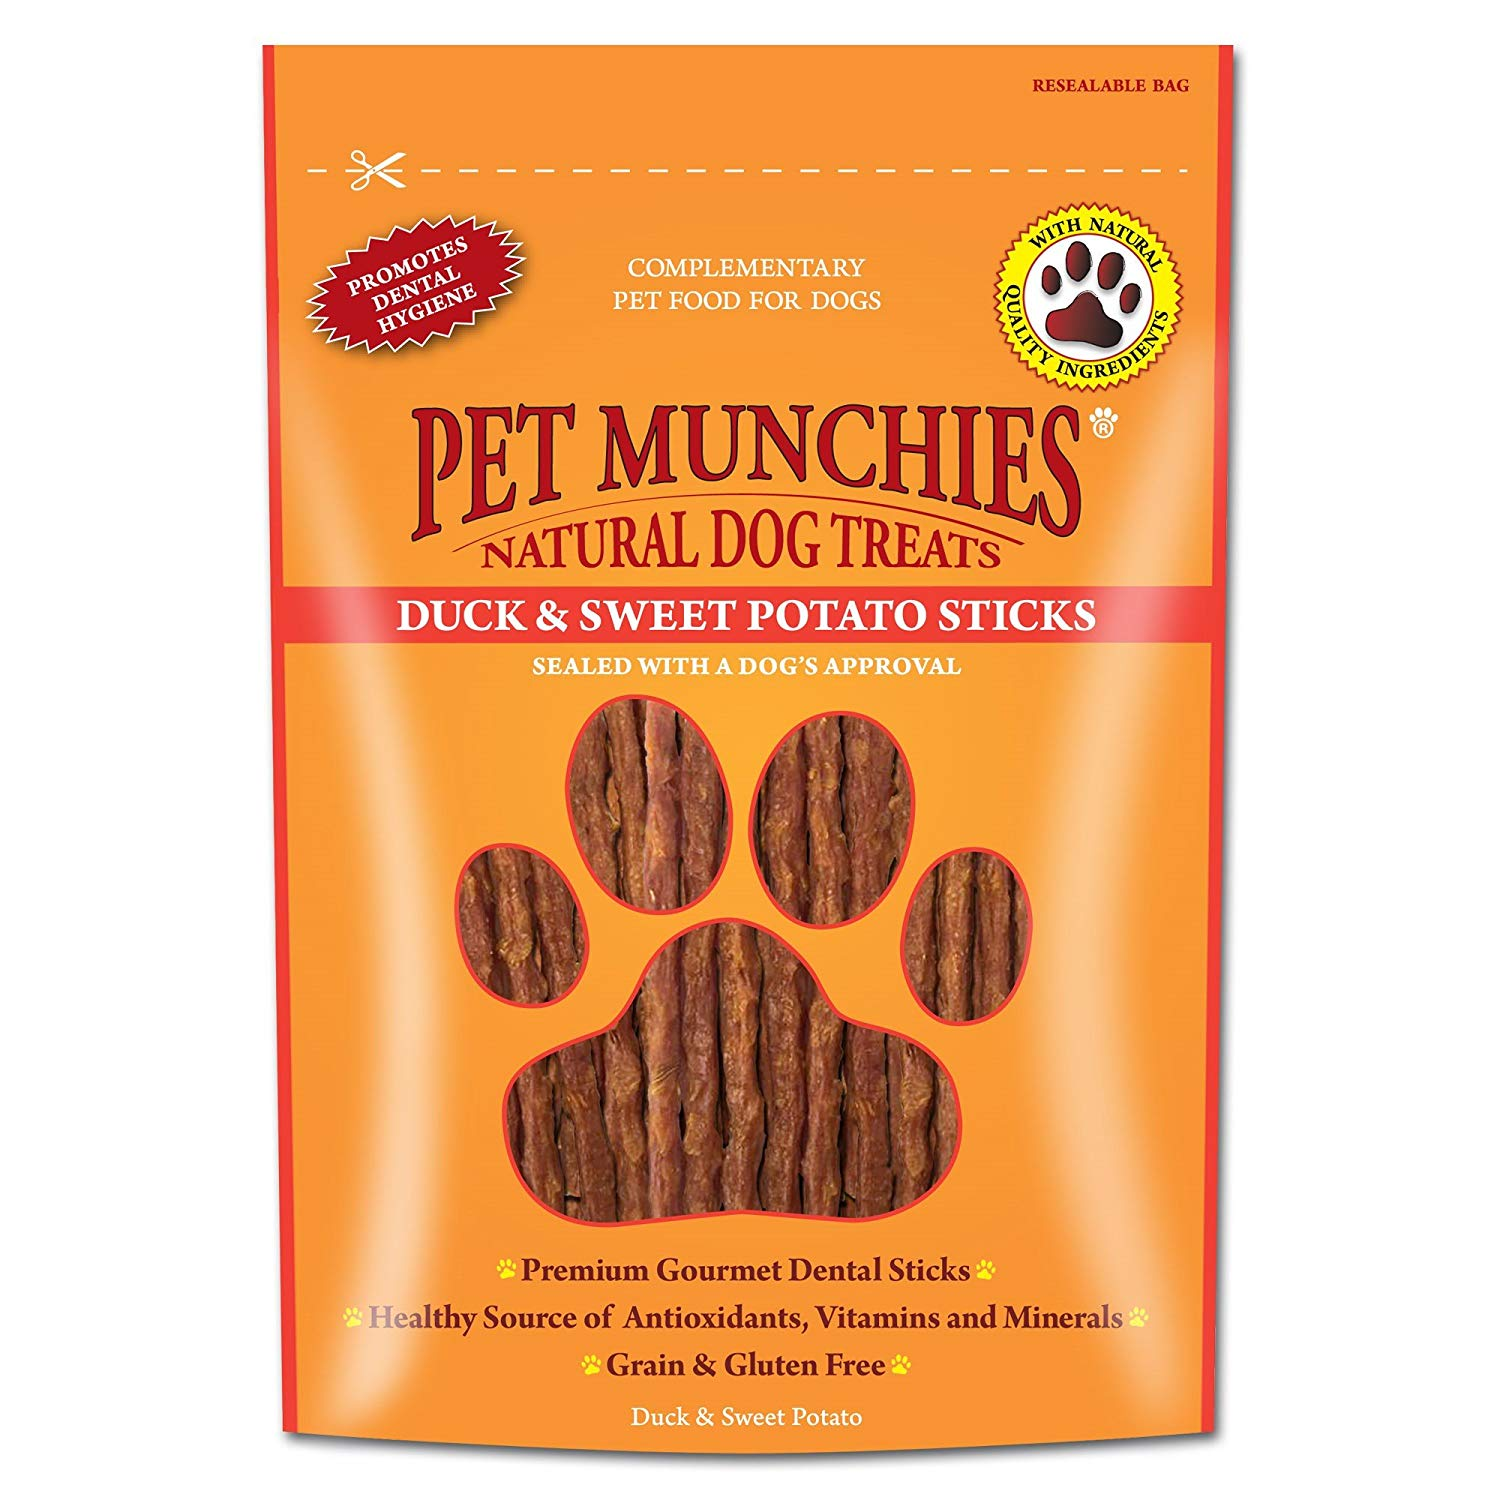 Pet Munchies Duck & Sweet Potato Dental Sticks 90g